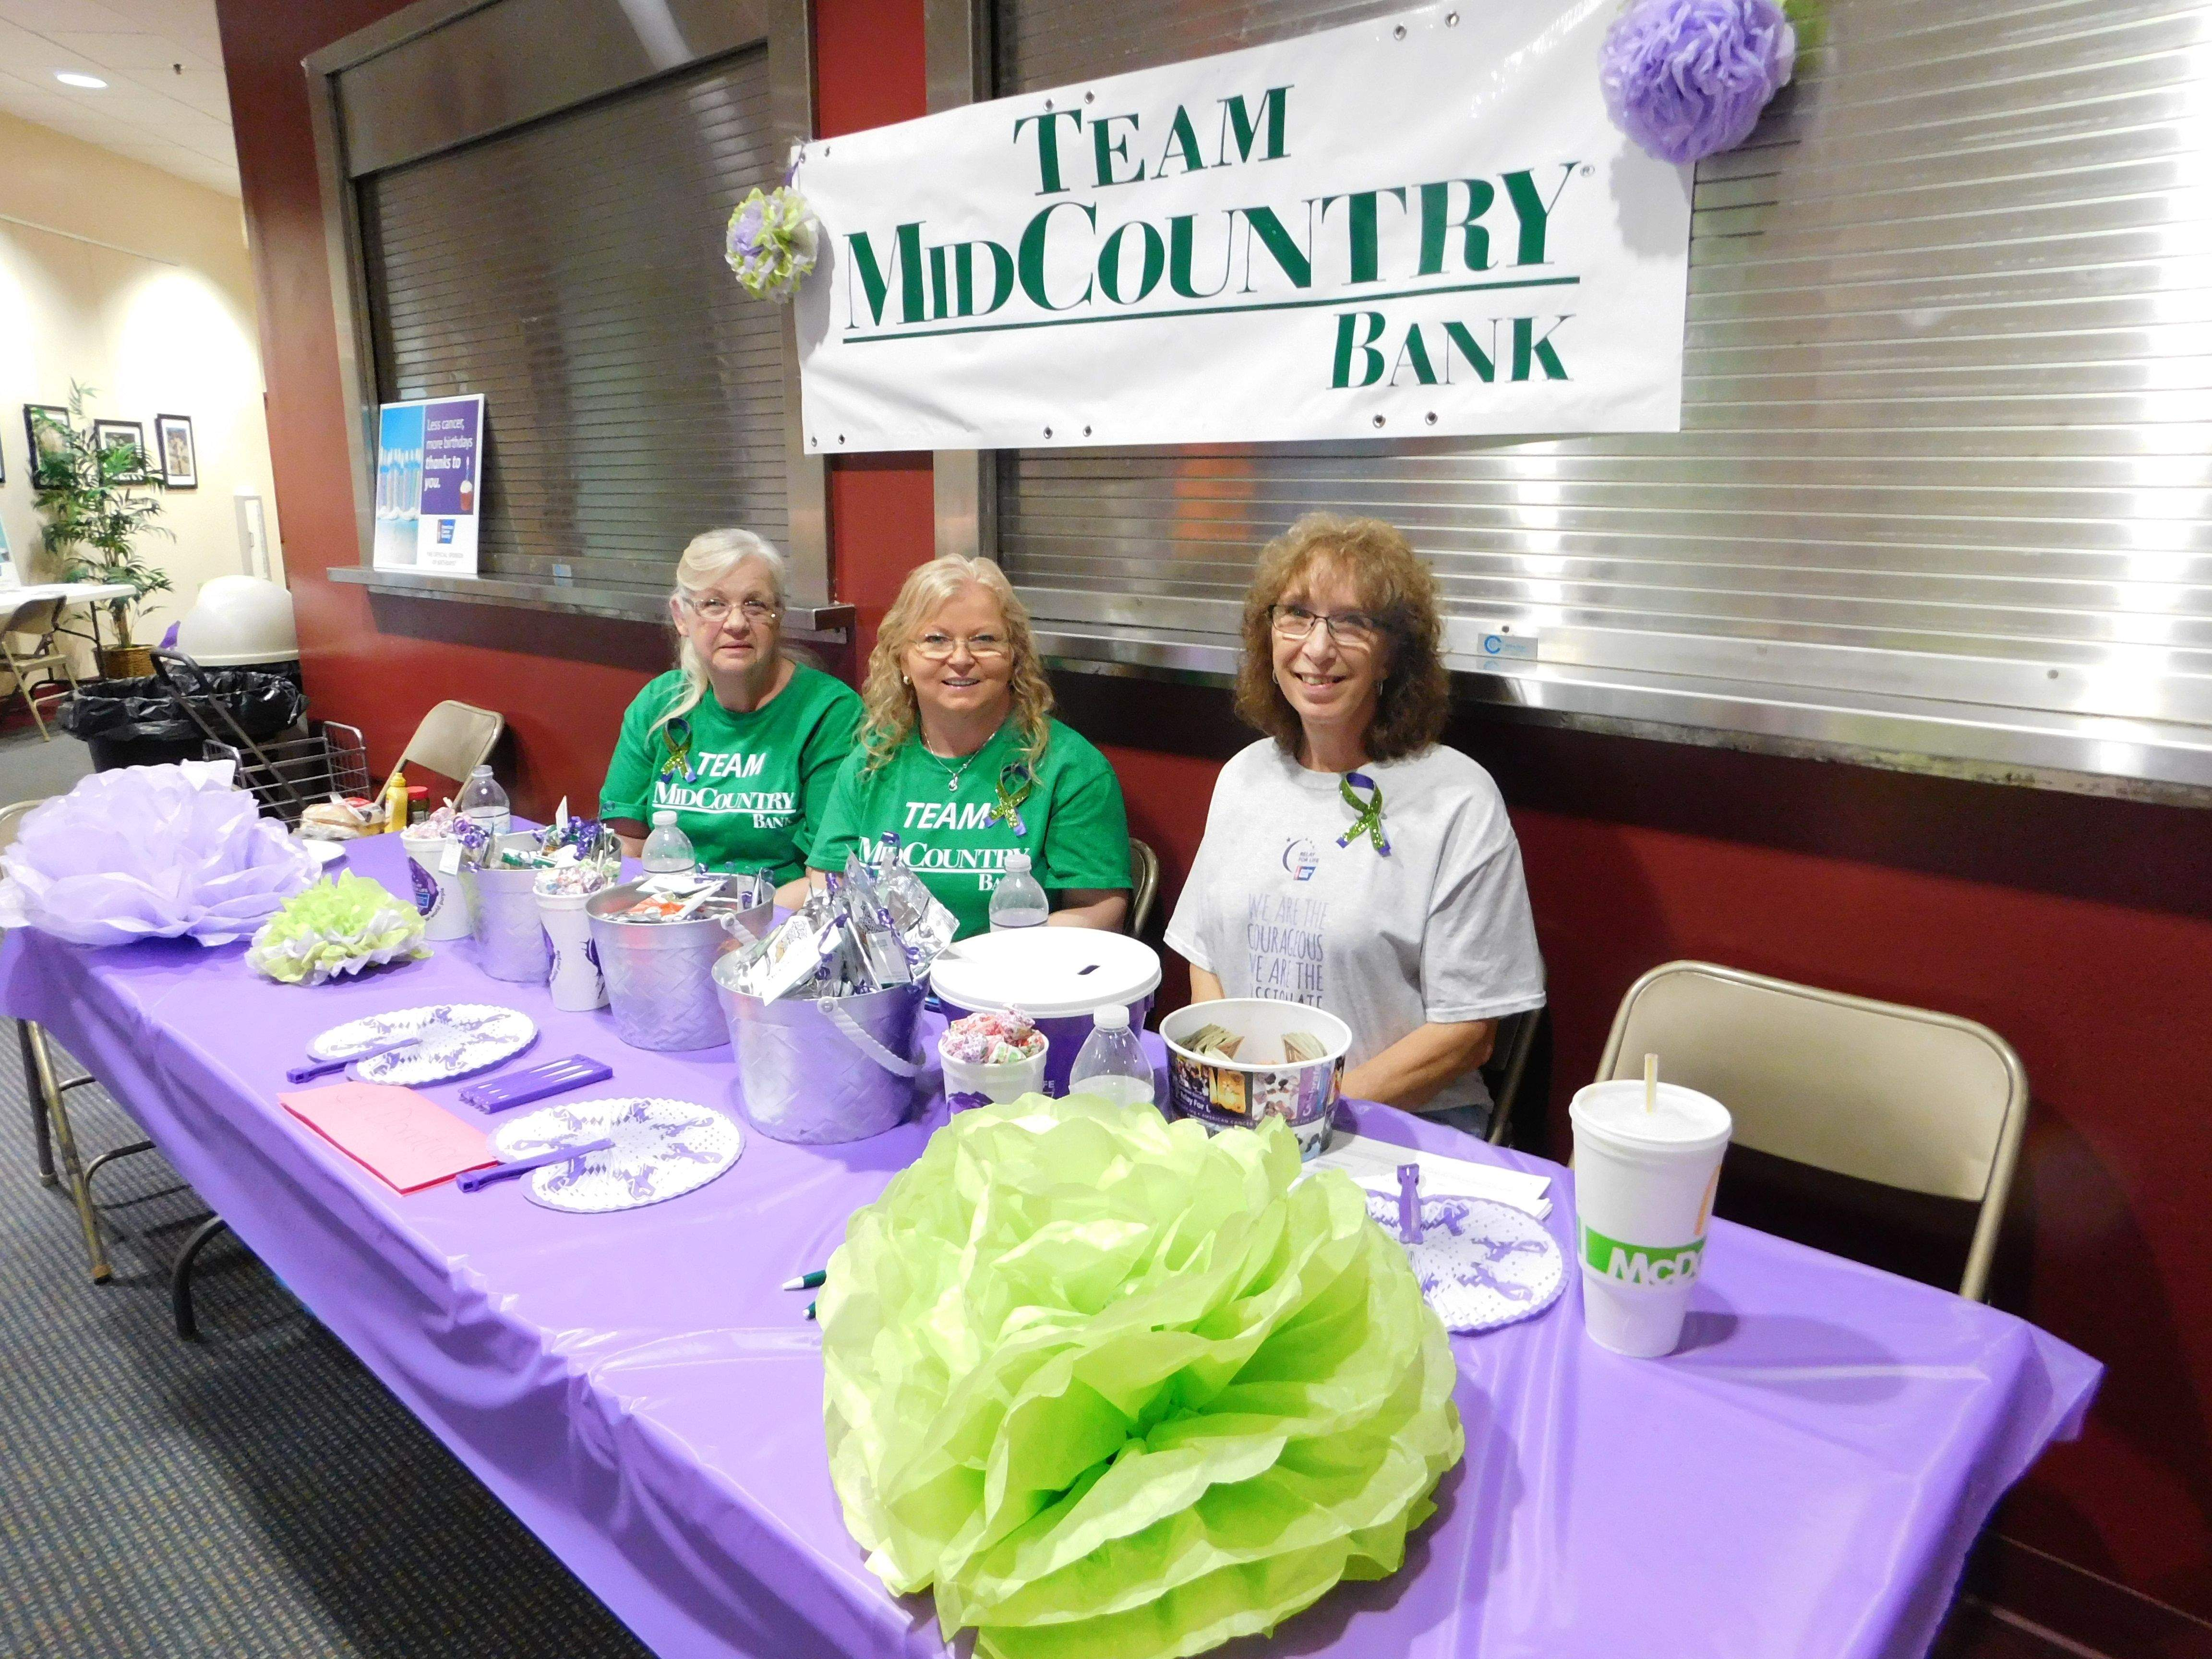 Peggy McClintock, Verneda McEndree and Kathy Storey were part of the Mid-Country Bank team that raised just over $400 for the Franklin County Relay for Life, which was held Saturday at the Benton Civic Center. The team sold 'cupcakes' for the bank windows, among other things to do their part for the annual event.